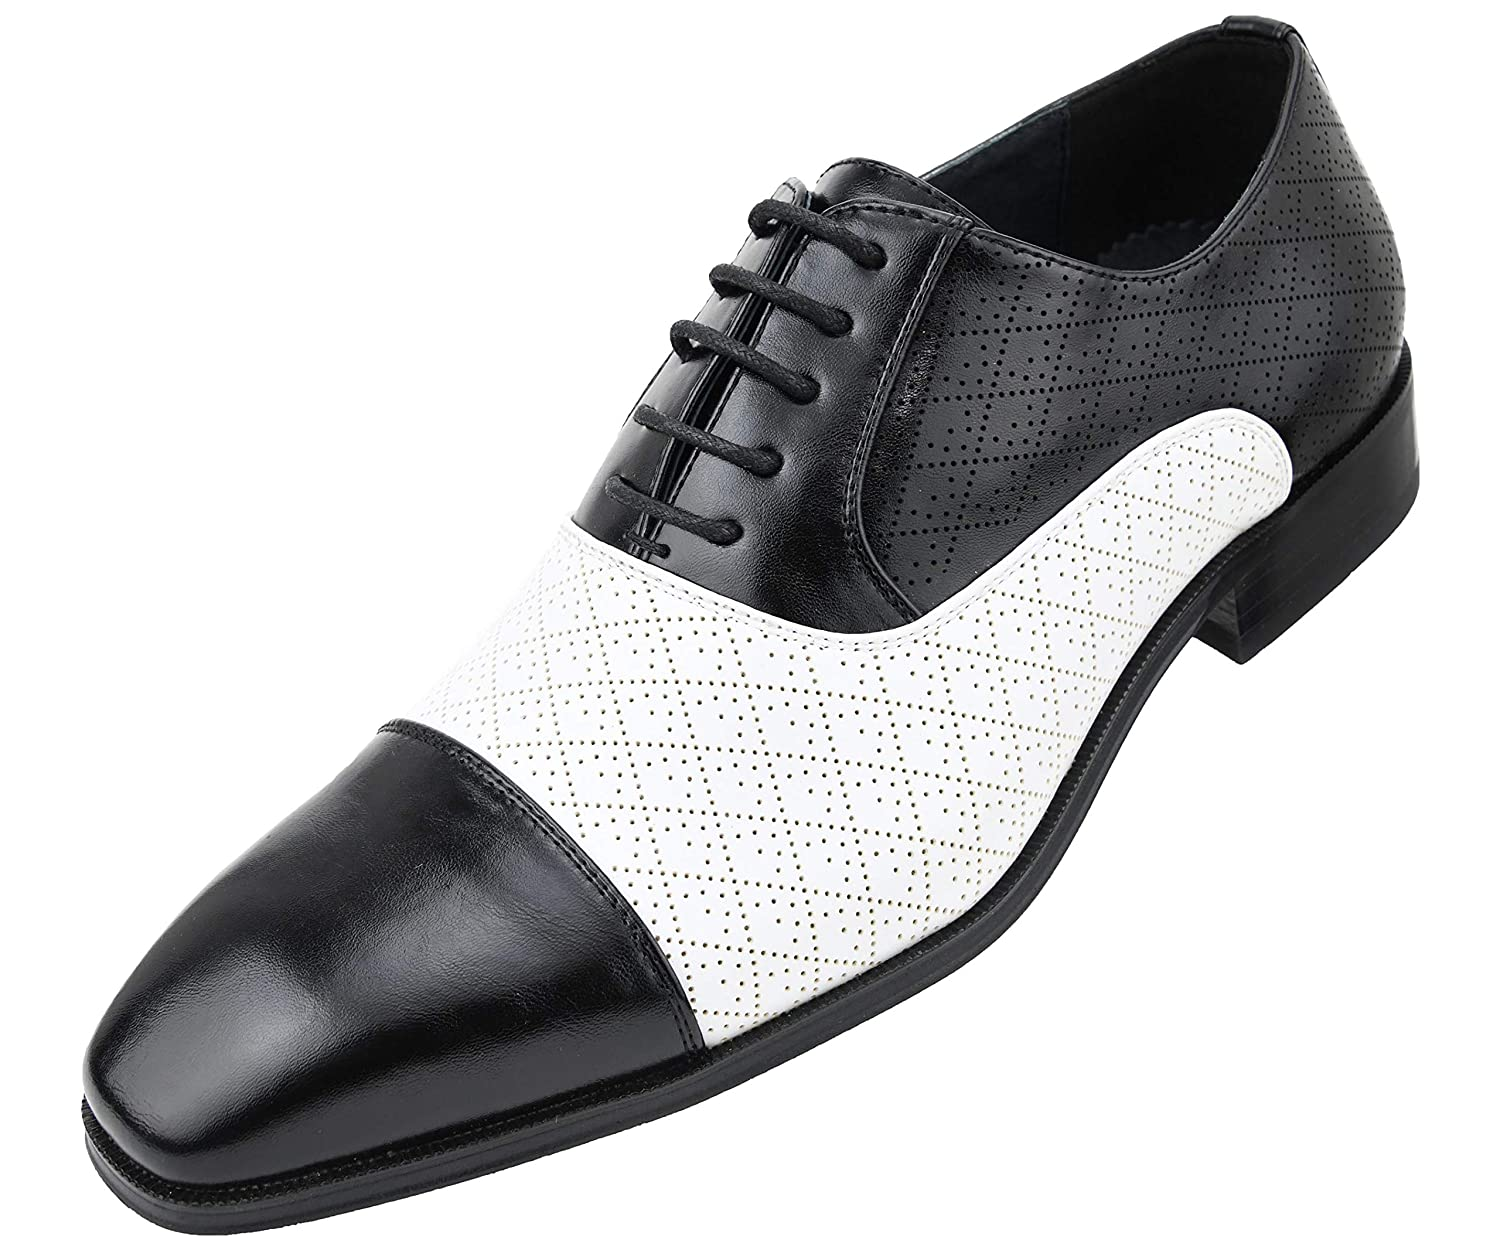 1920s Style Mens Shoes | Peaky Blinders Boots Amali Mens Quilted Embossed Two Tone Lace Up Faux Leather Oxford Dress Shoe with Smooth Cap Toe Style Hammond $49.99 AT vintagedancer.com